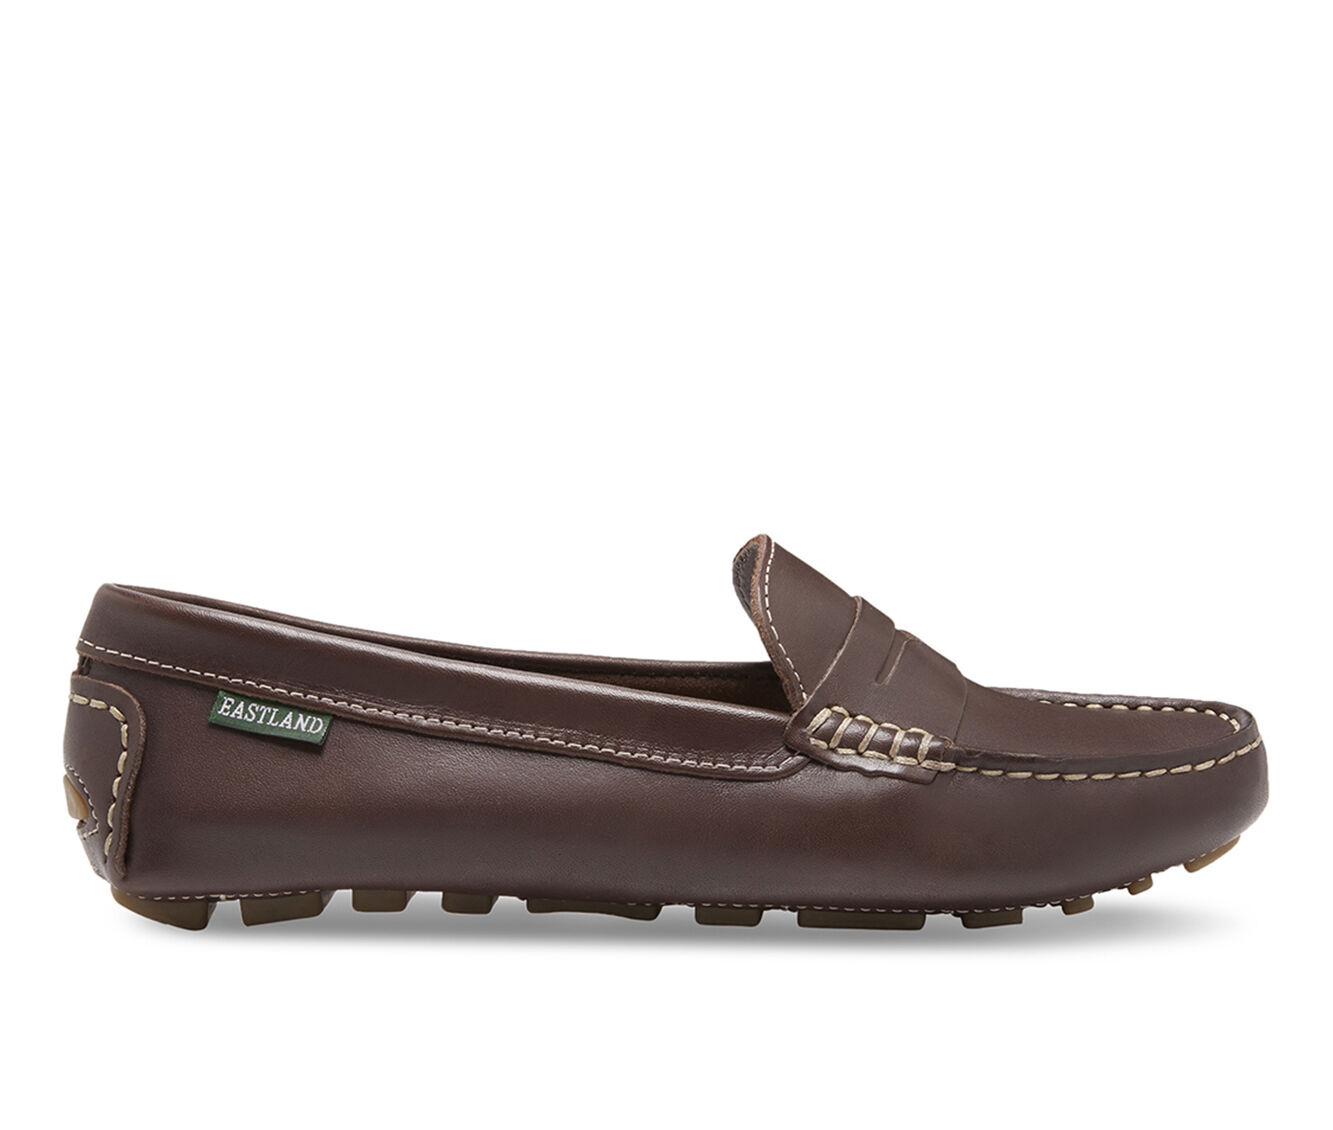 Women's Eastland Patricia Penny Loafers Brown